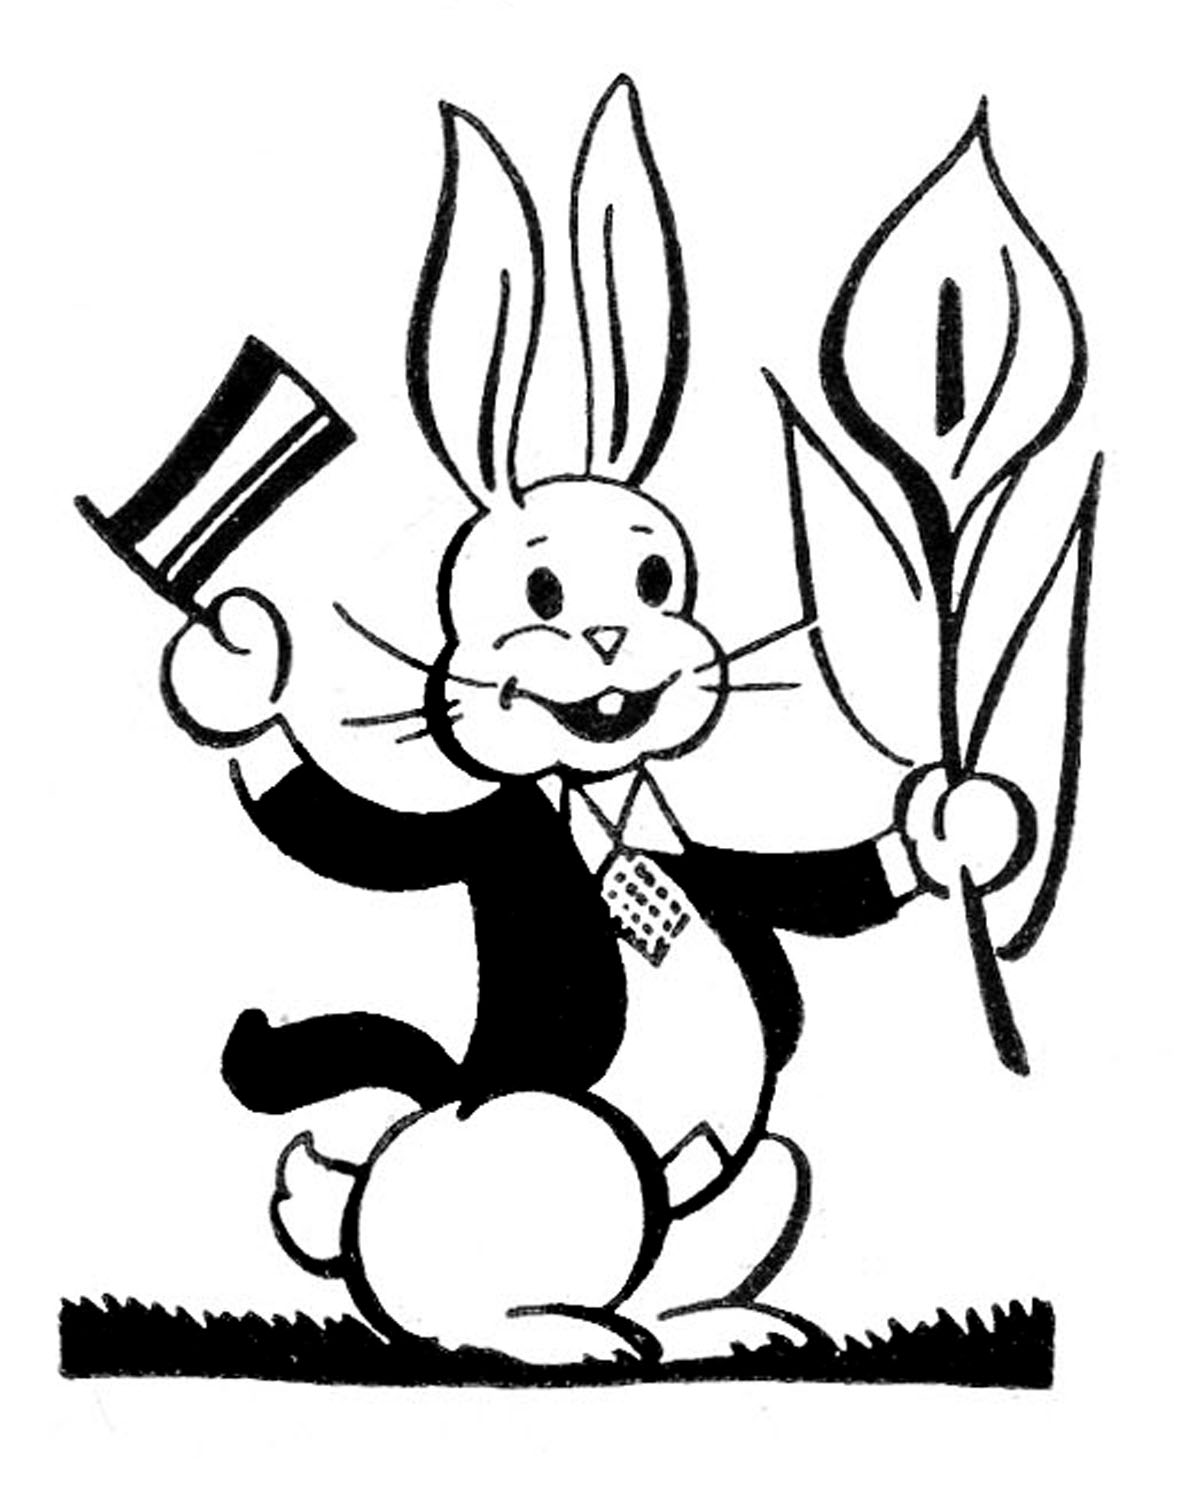 black and white rabbit drawing 20 bunny rabbit silhouettes and clip art the graphics fairy white and drawing black rabbit